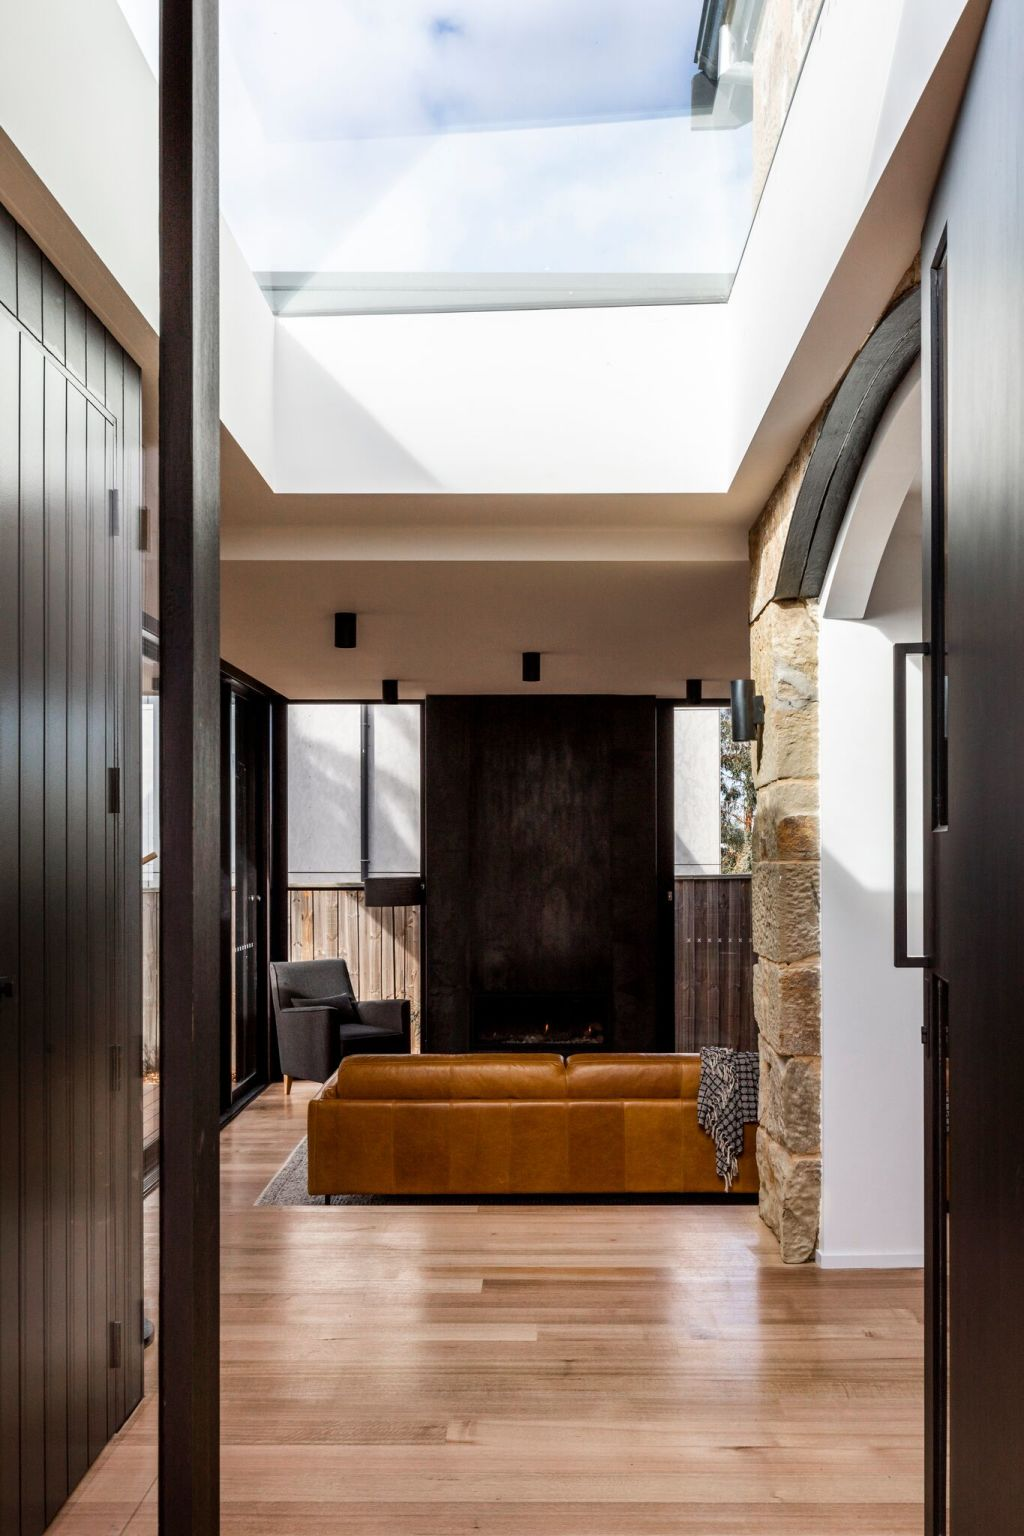 A_STUNNINGLY_BRIGHT_MODERN_INTERIOR_IN_A_HERITAGE_BUILDING_suunq6